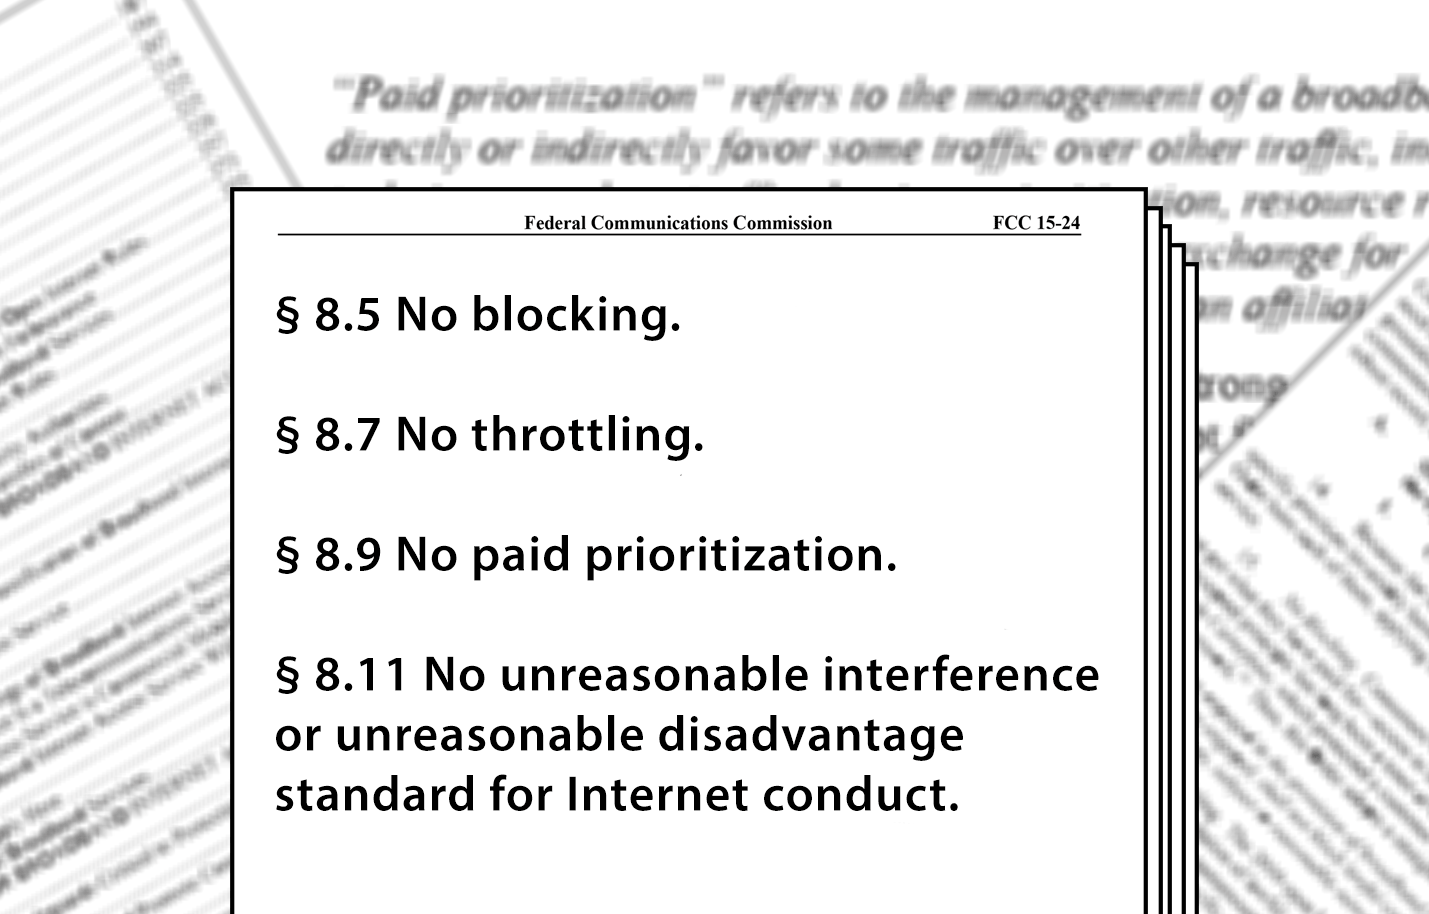 Net neutrality principles no blocking no throttling